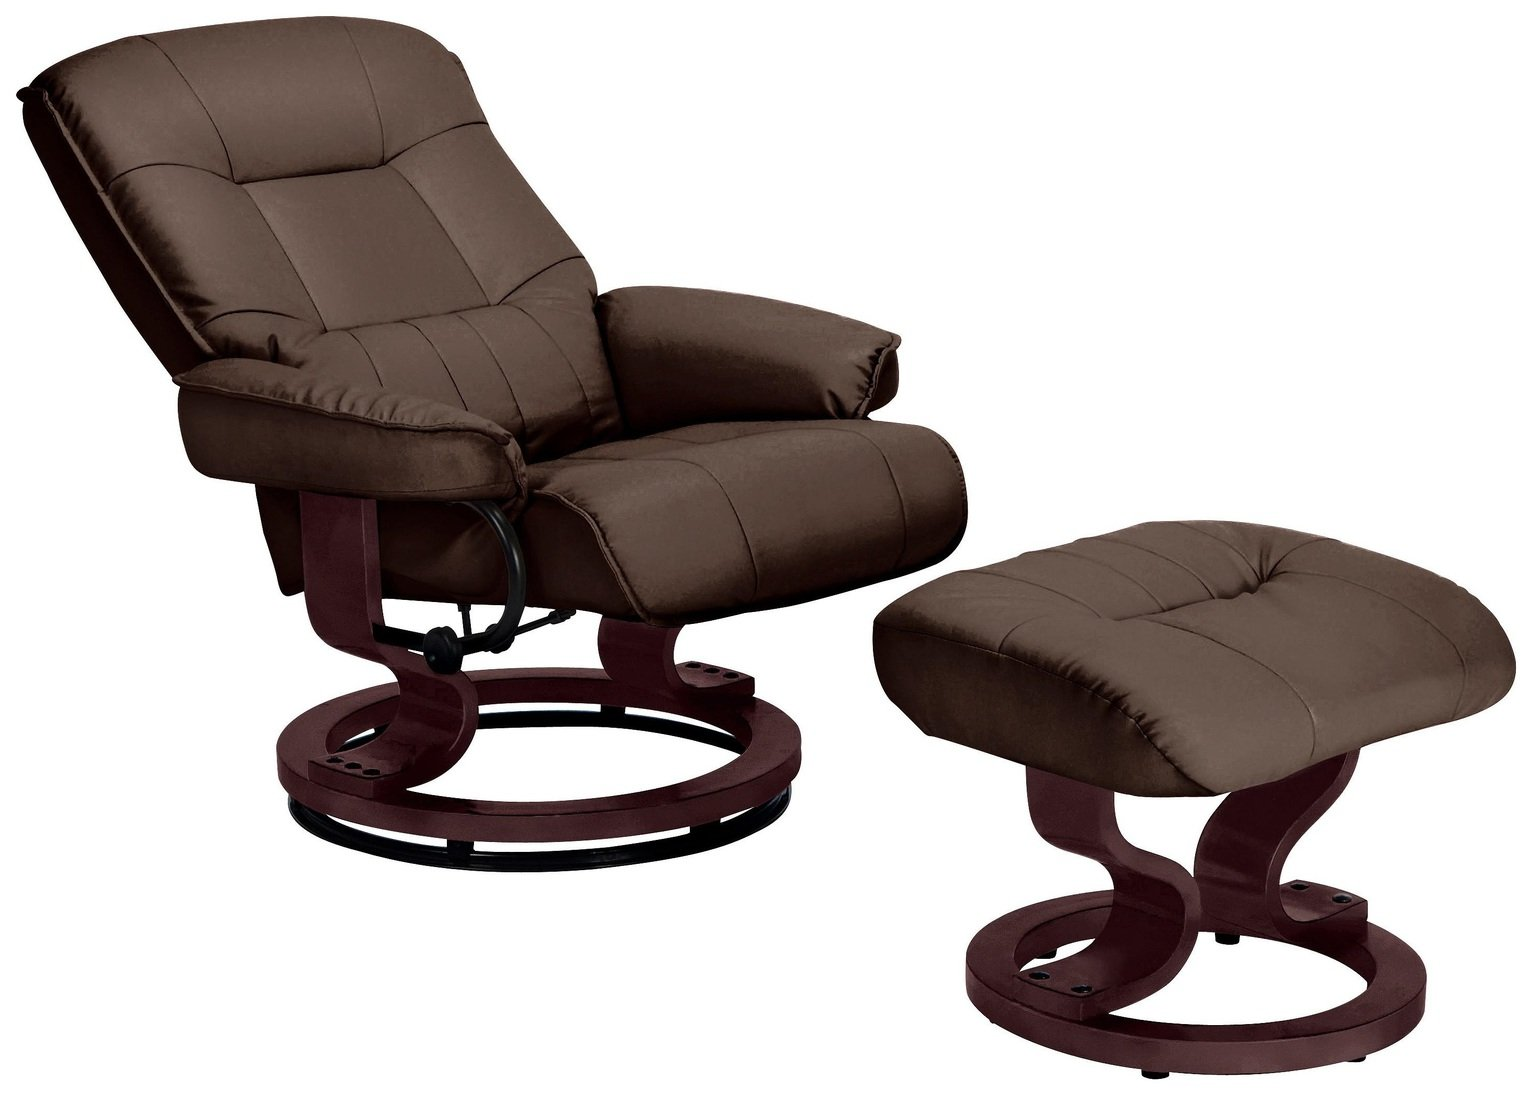 Collection Santos Recliner Chair and Footstool - Chocolate  sc 1 st  Argos & Buy Collection Santos Recliner Chair and Footstool - Chocolate at ... islam-shia.org